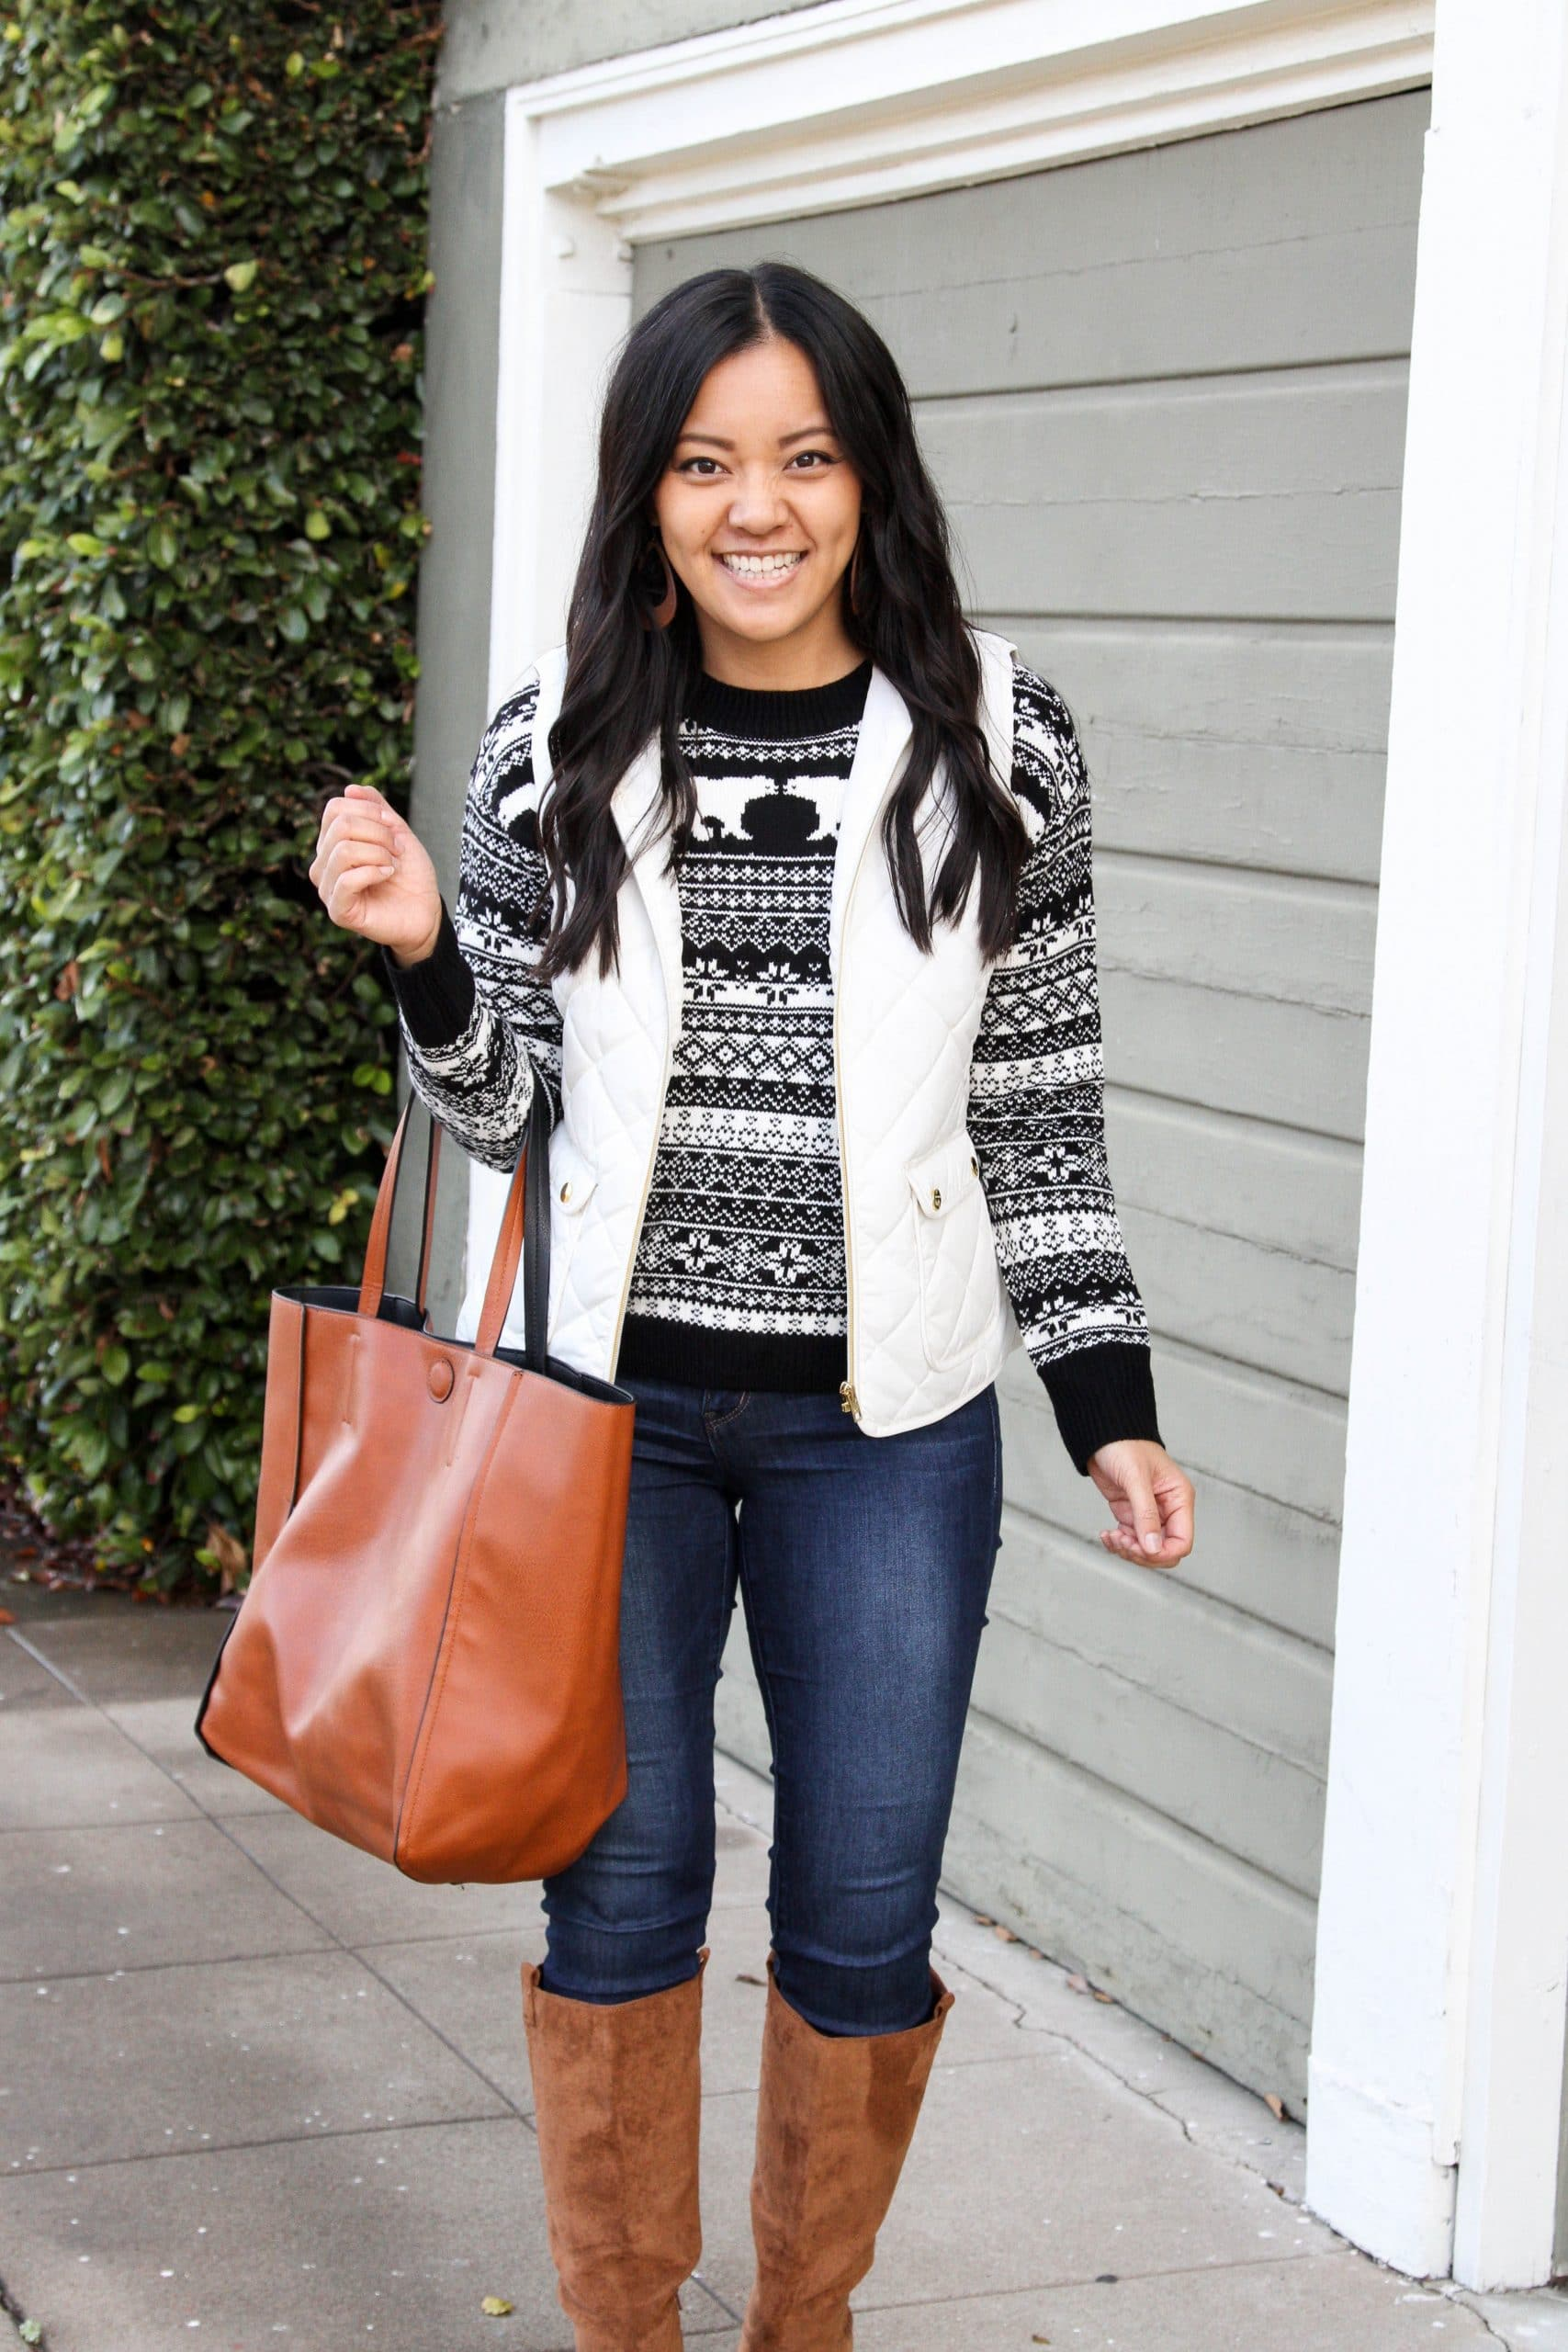 fair isle sweater + skinny jeans + brown boots + white vest